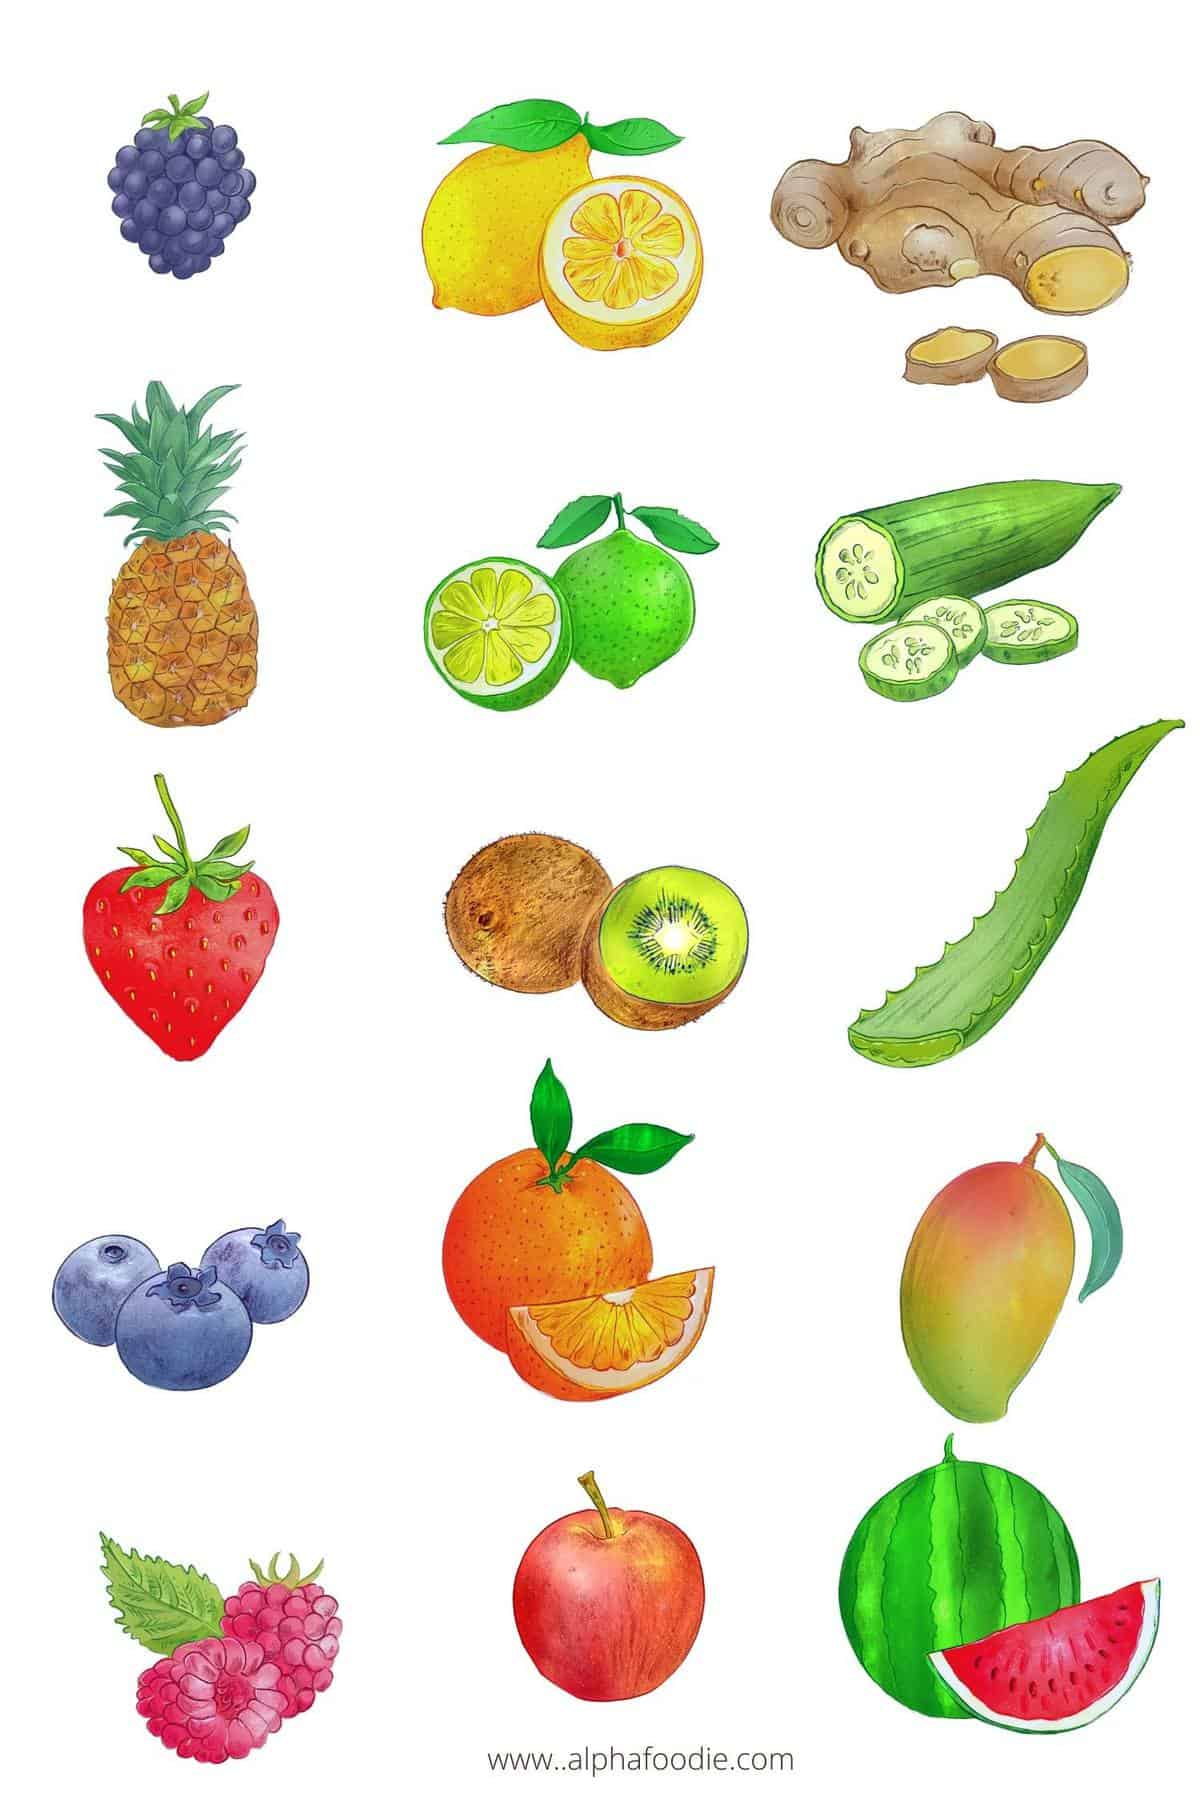 Drawings of fruit to make Flavored Water